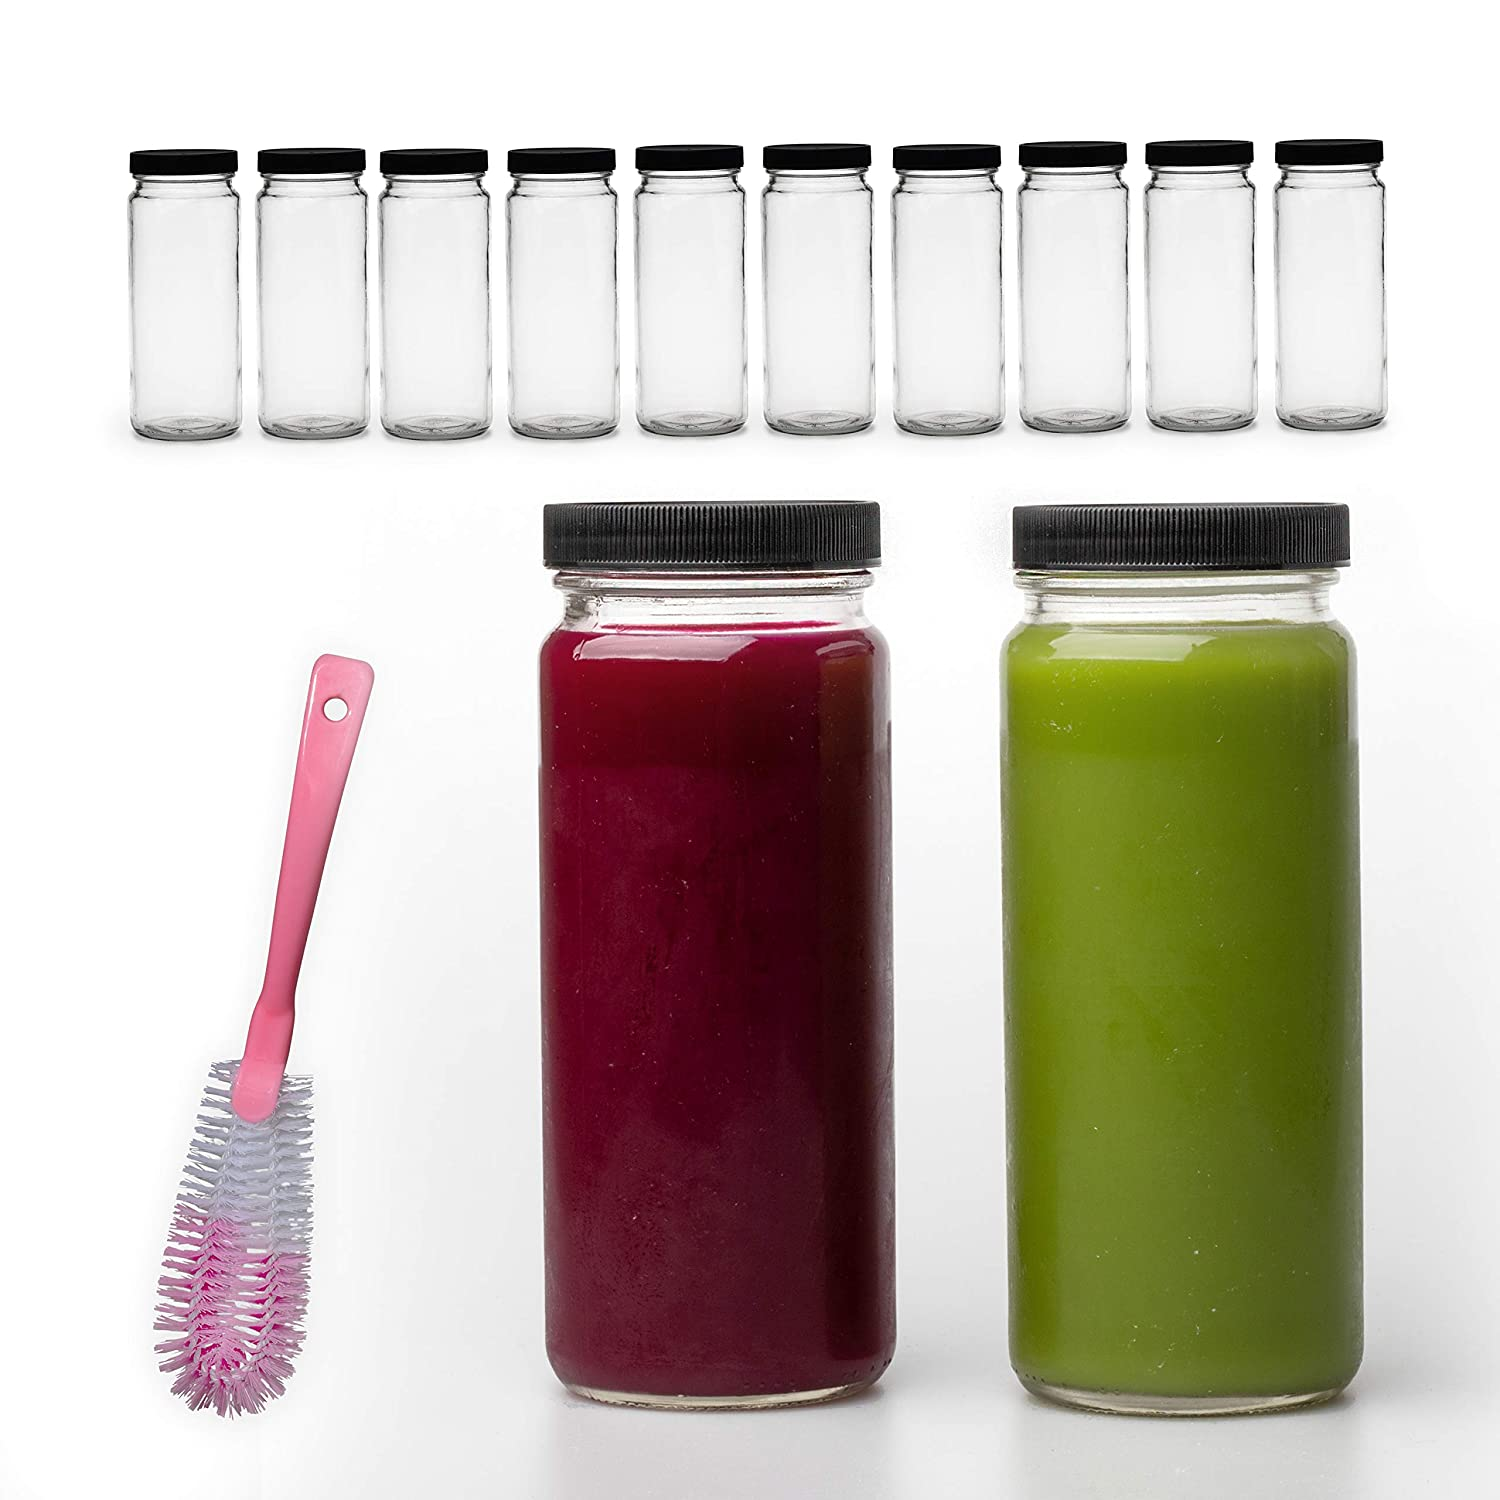 16 Ounce Glass Smoothie Bottles With Caps